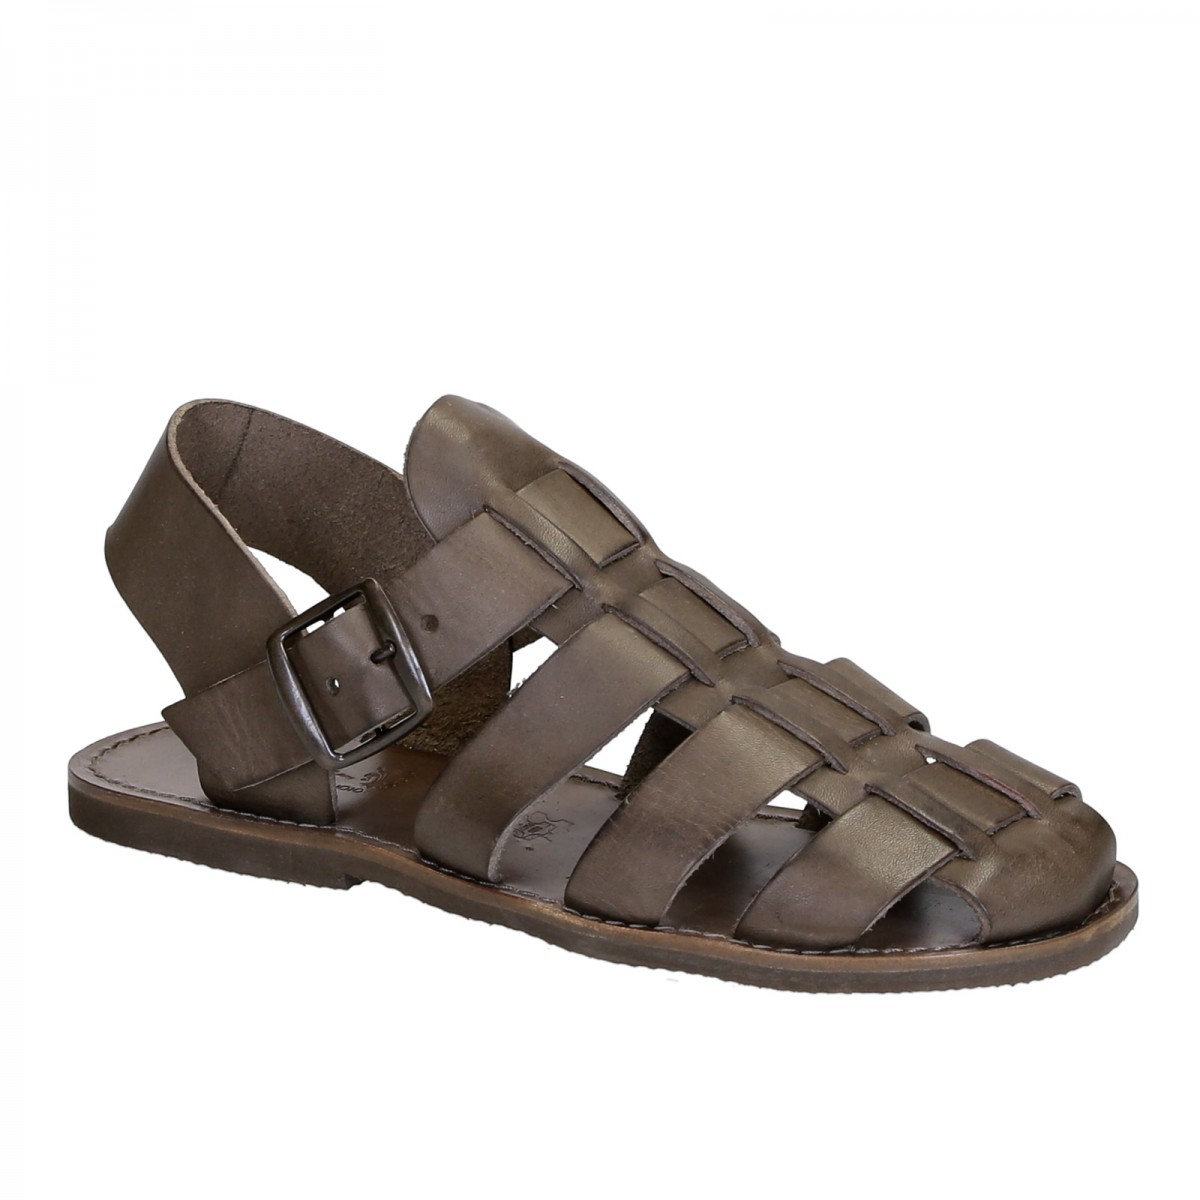 b23a3518b81 Handmade in Italy men s Franciscan sandals in mud color leather. Loading  zoom